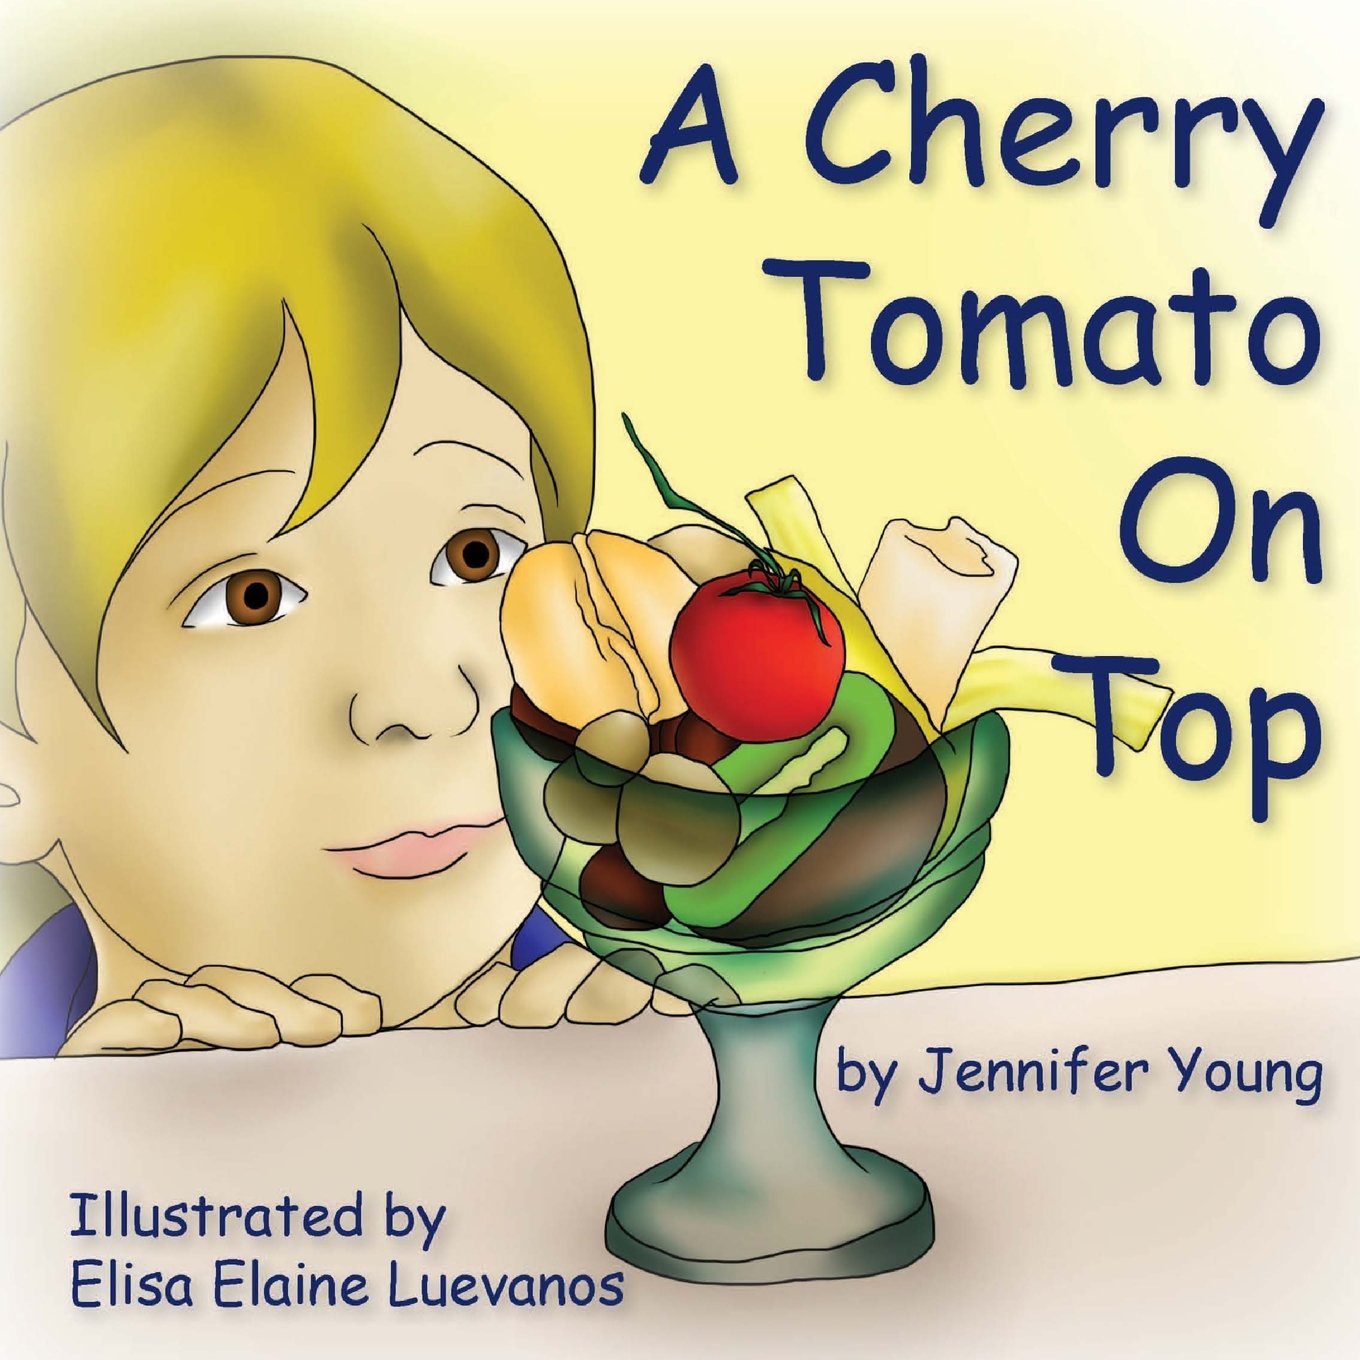 Cherry Tomato clipart happy Top: Cherry Jennifer Tomato com: